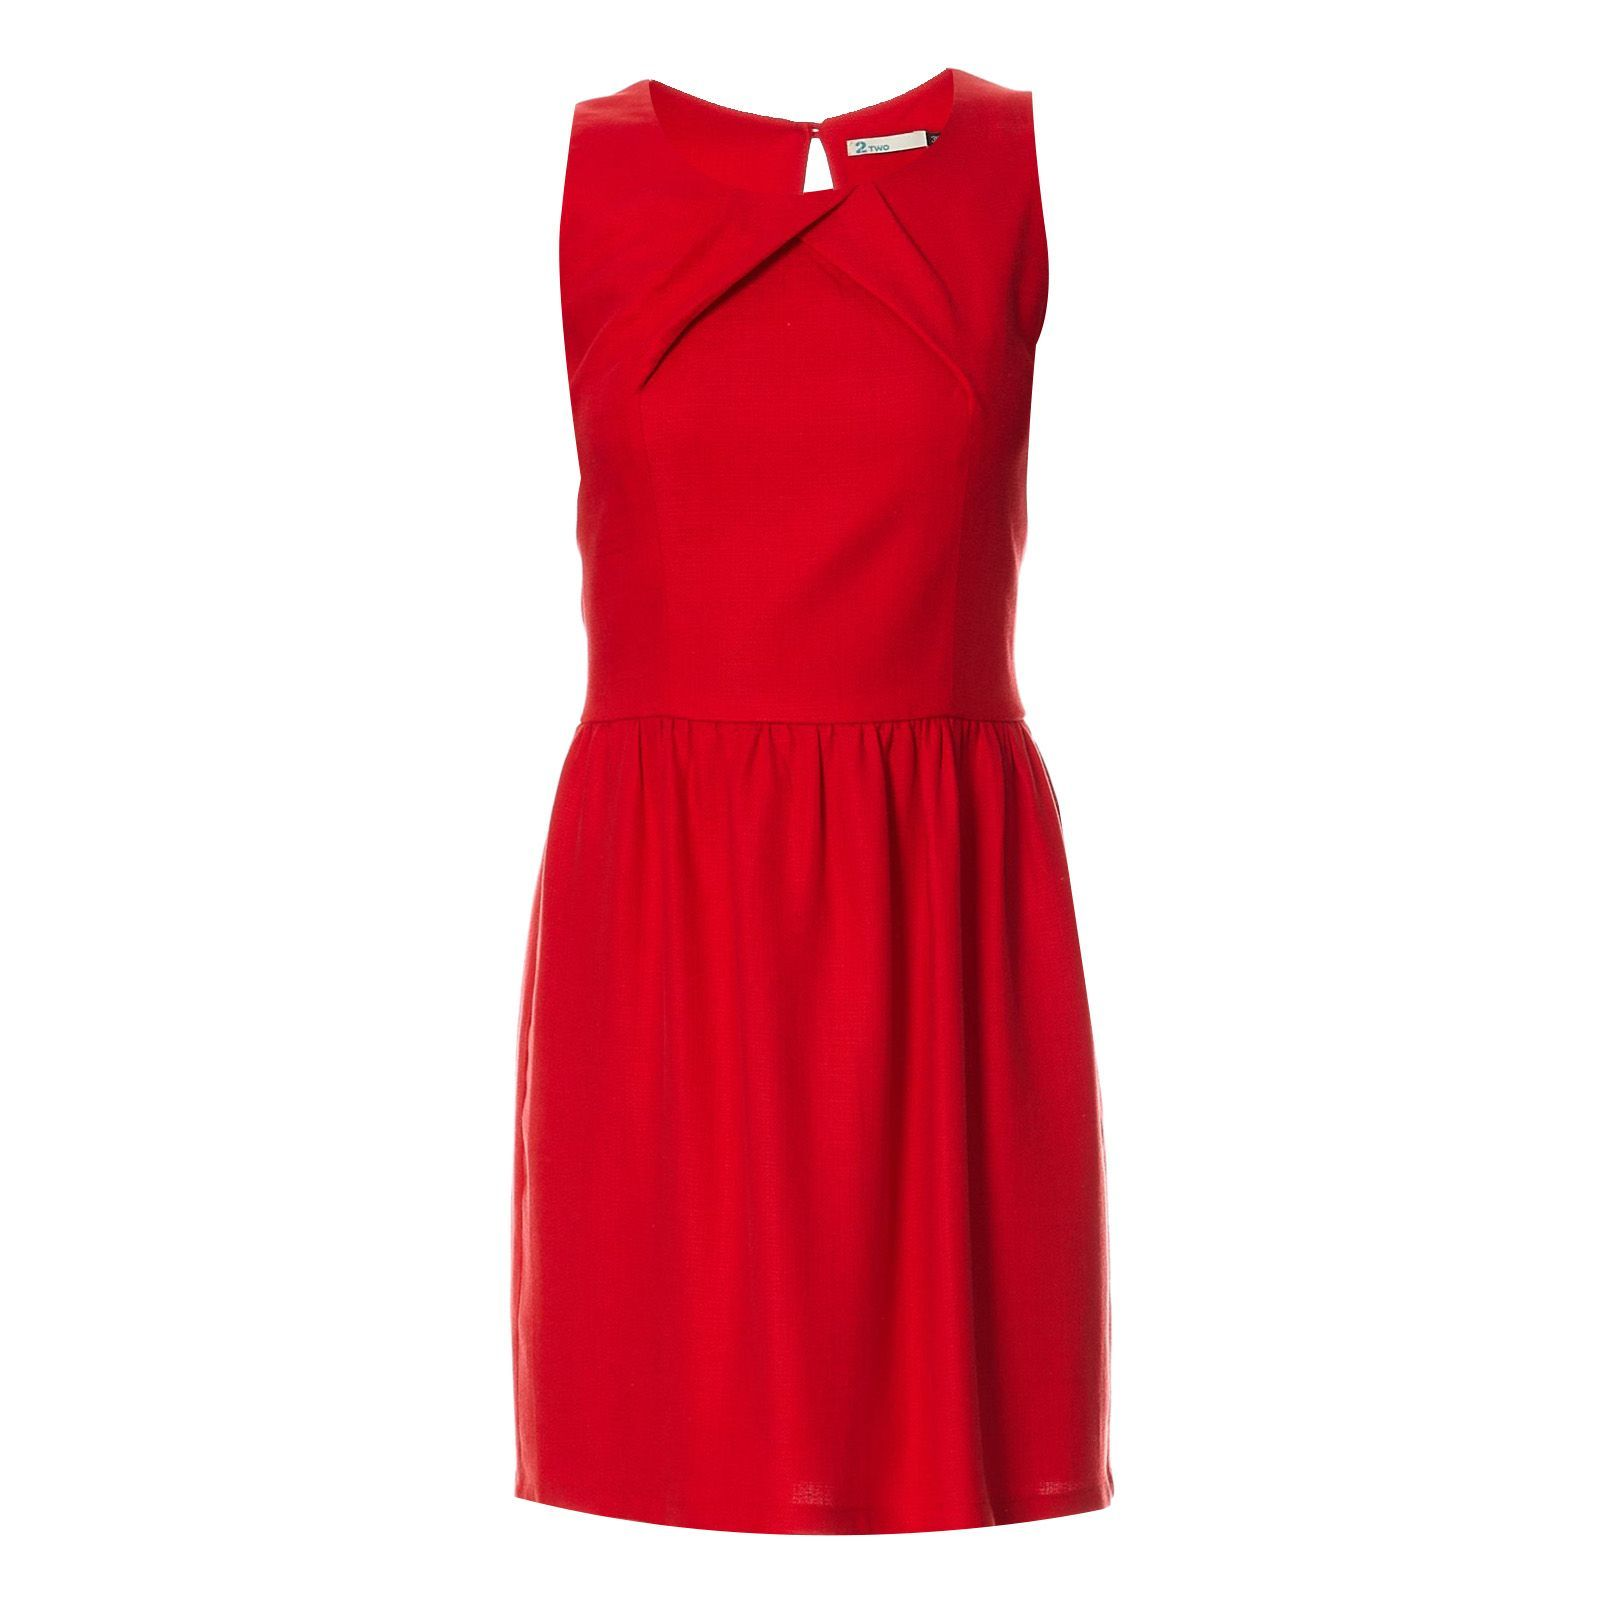 2two Robe - rouge